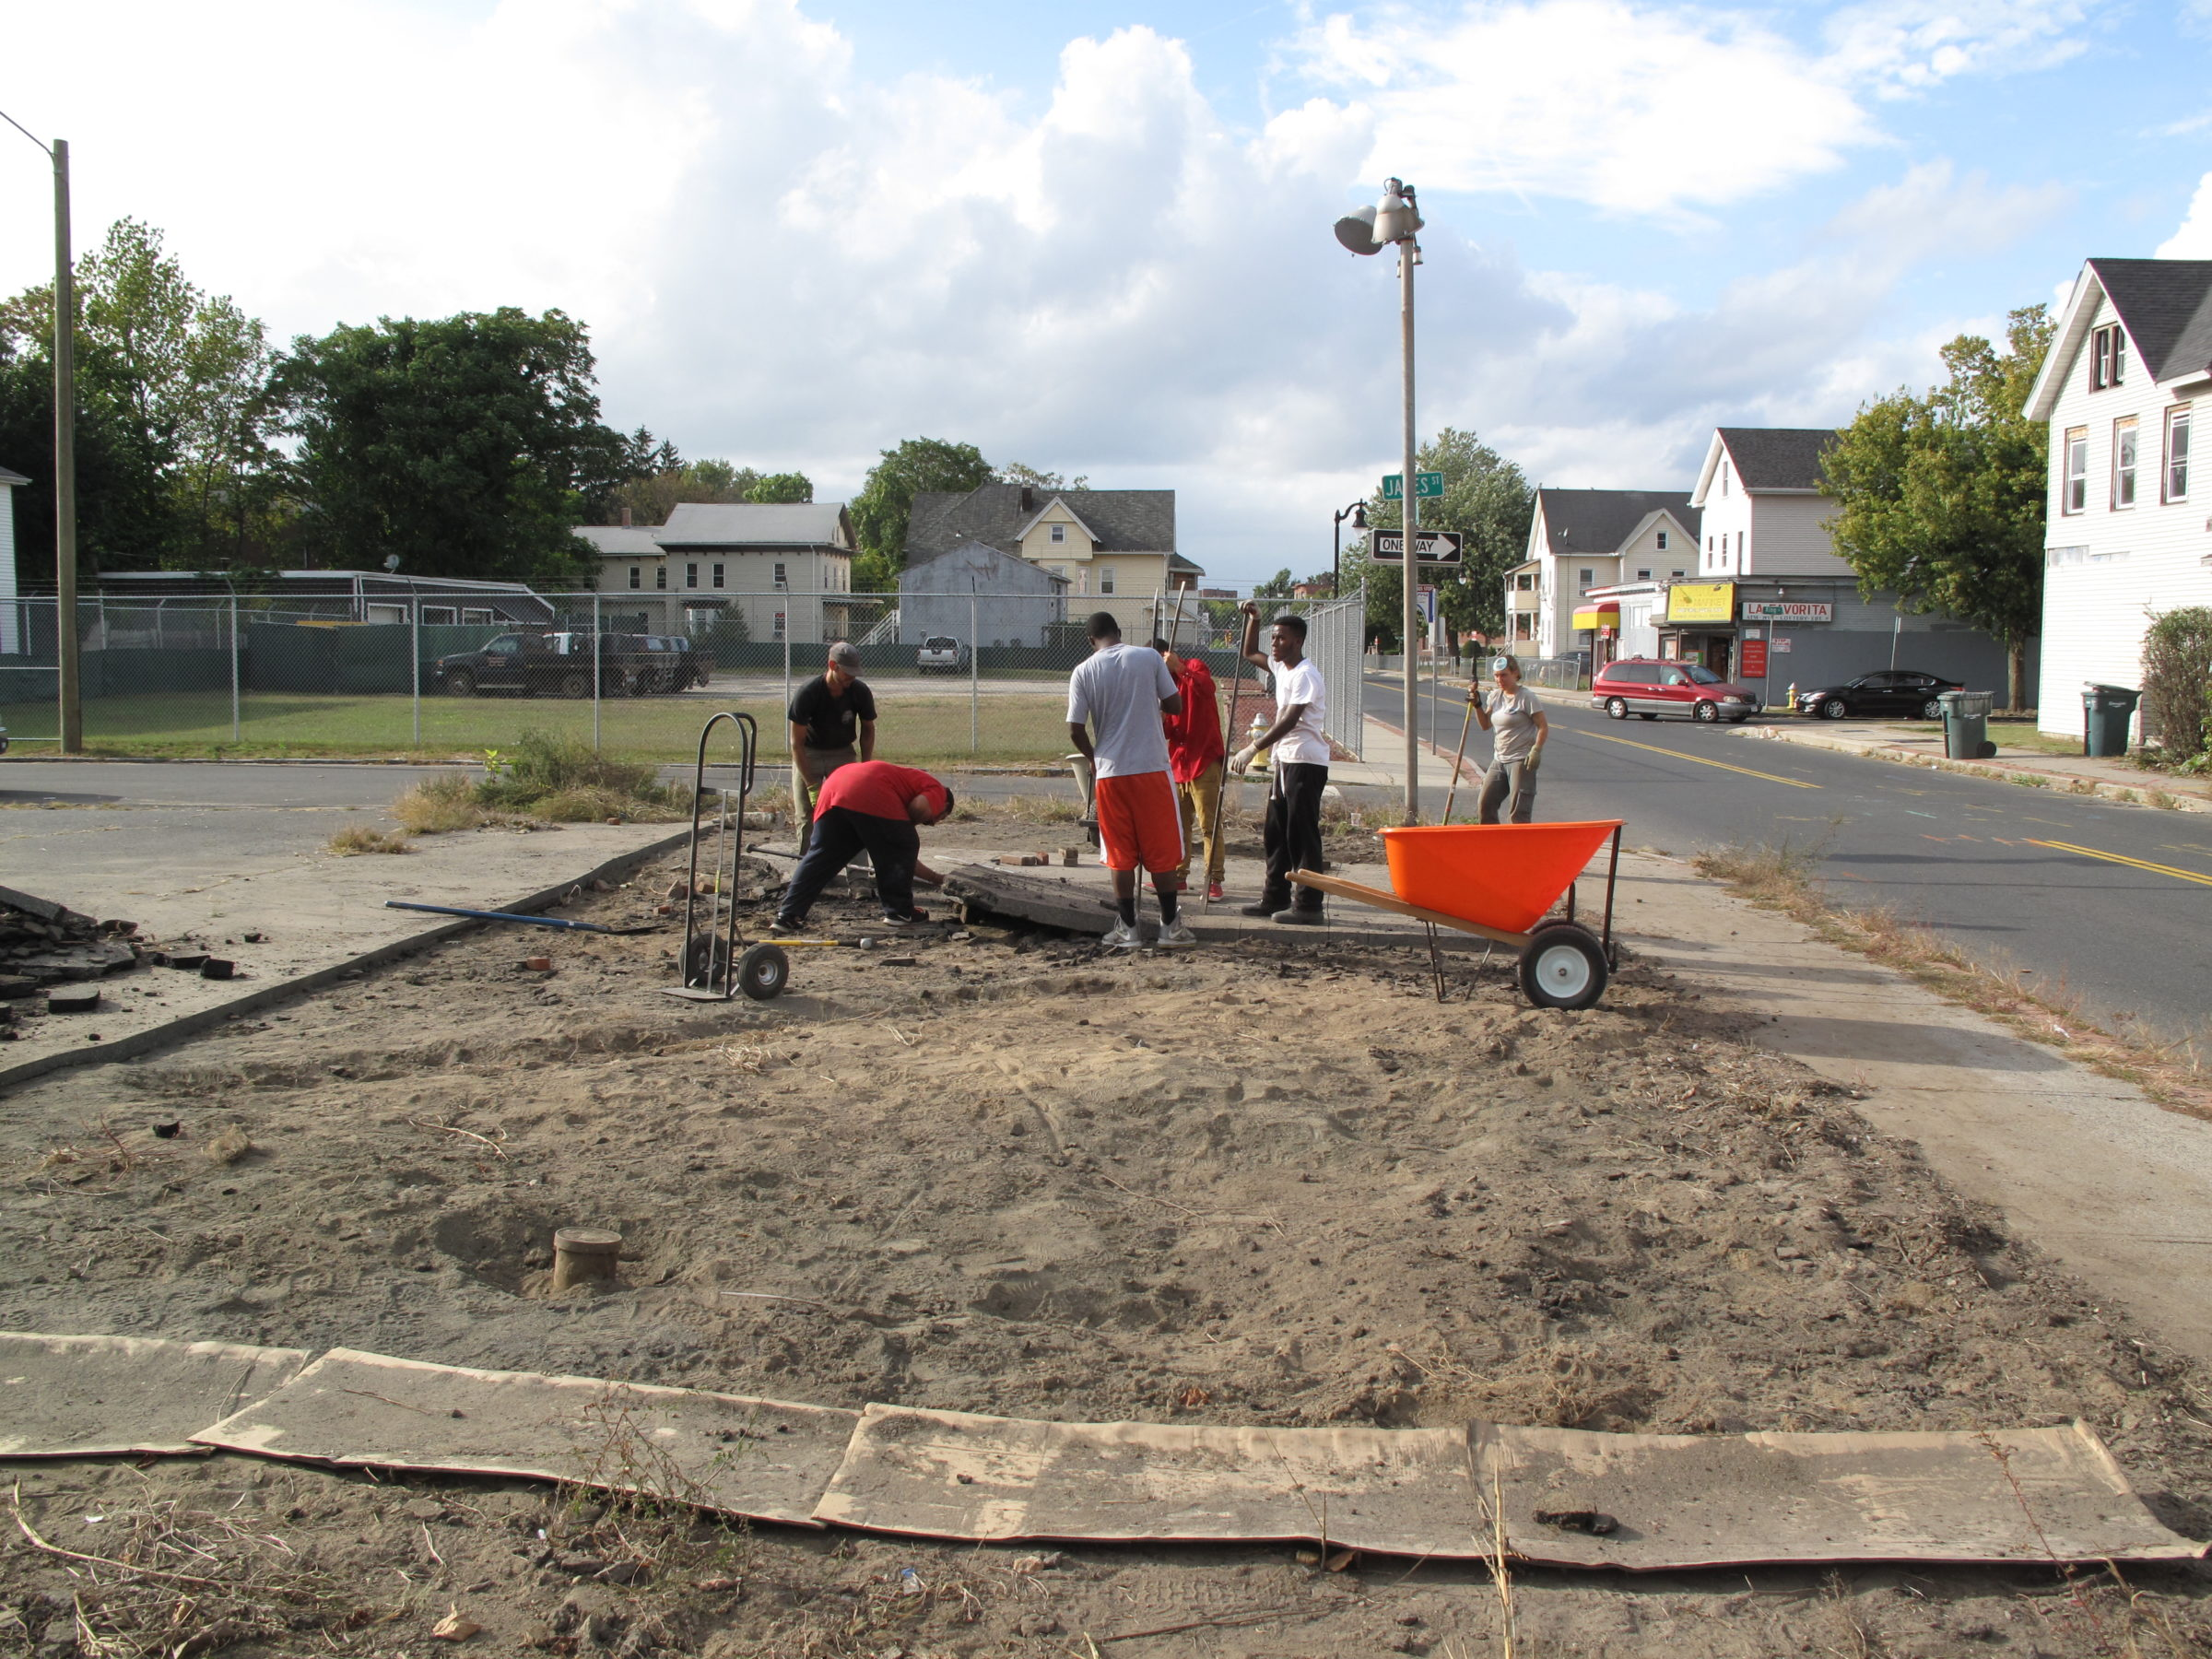 Preparing the site by removing the blacktop, shaping the garden, adding compost and soil amendments.